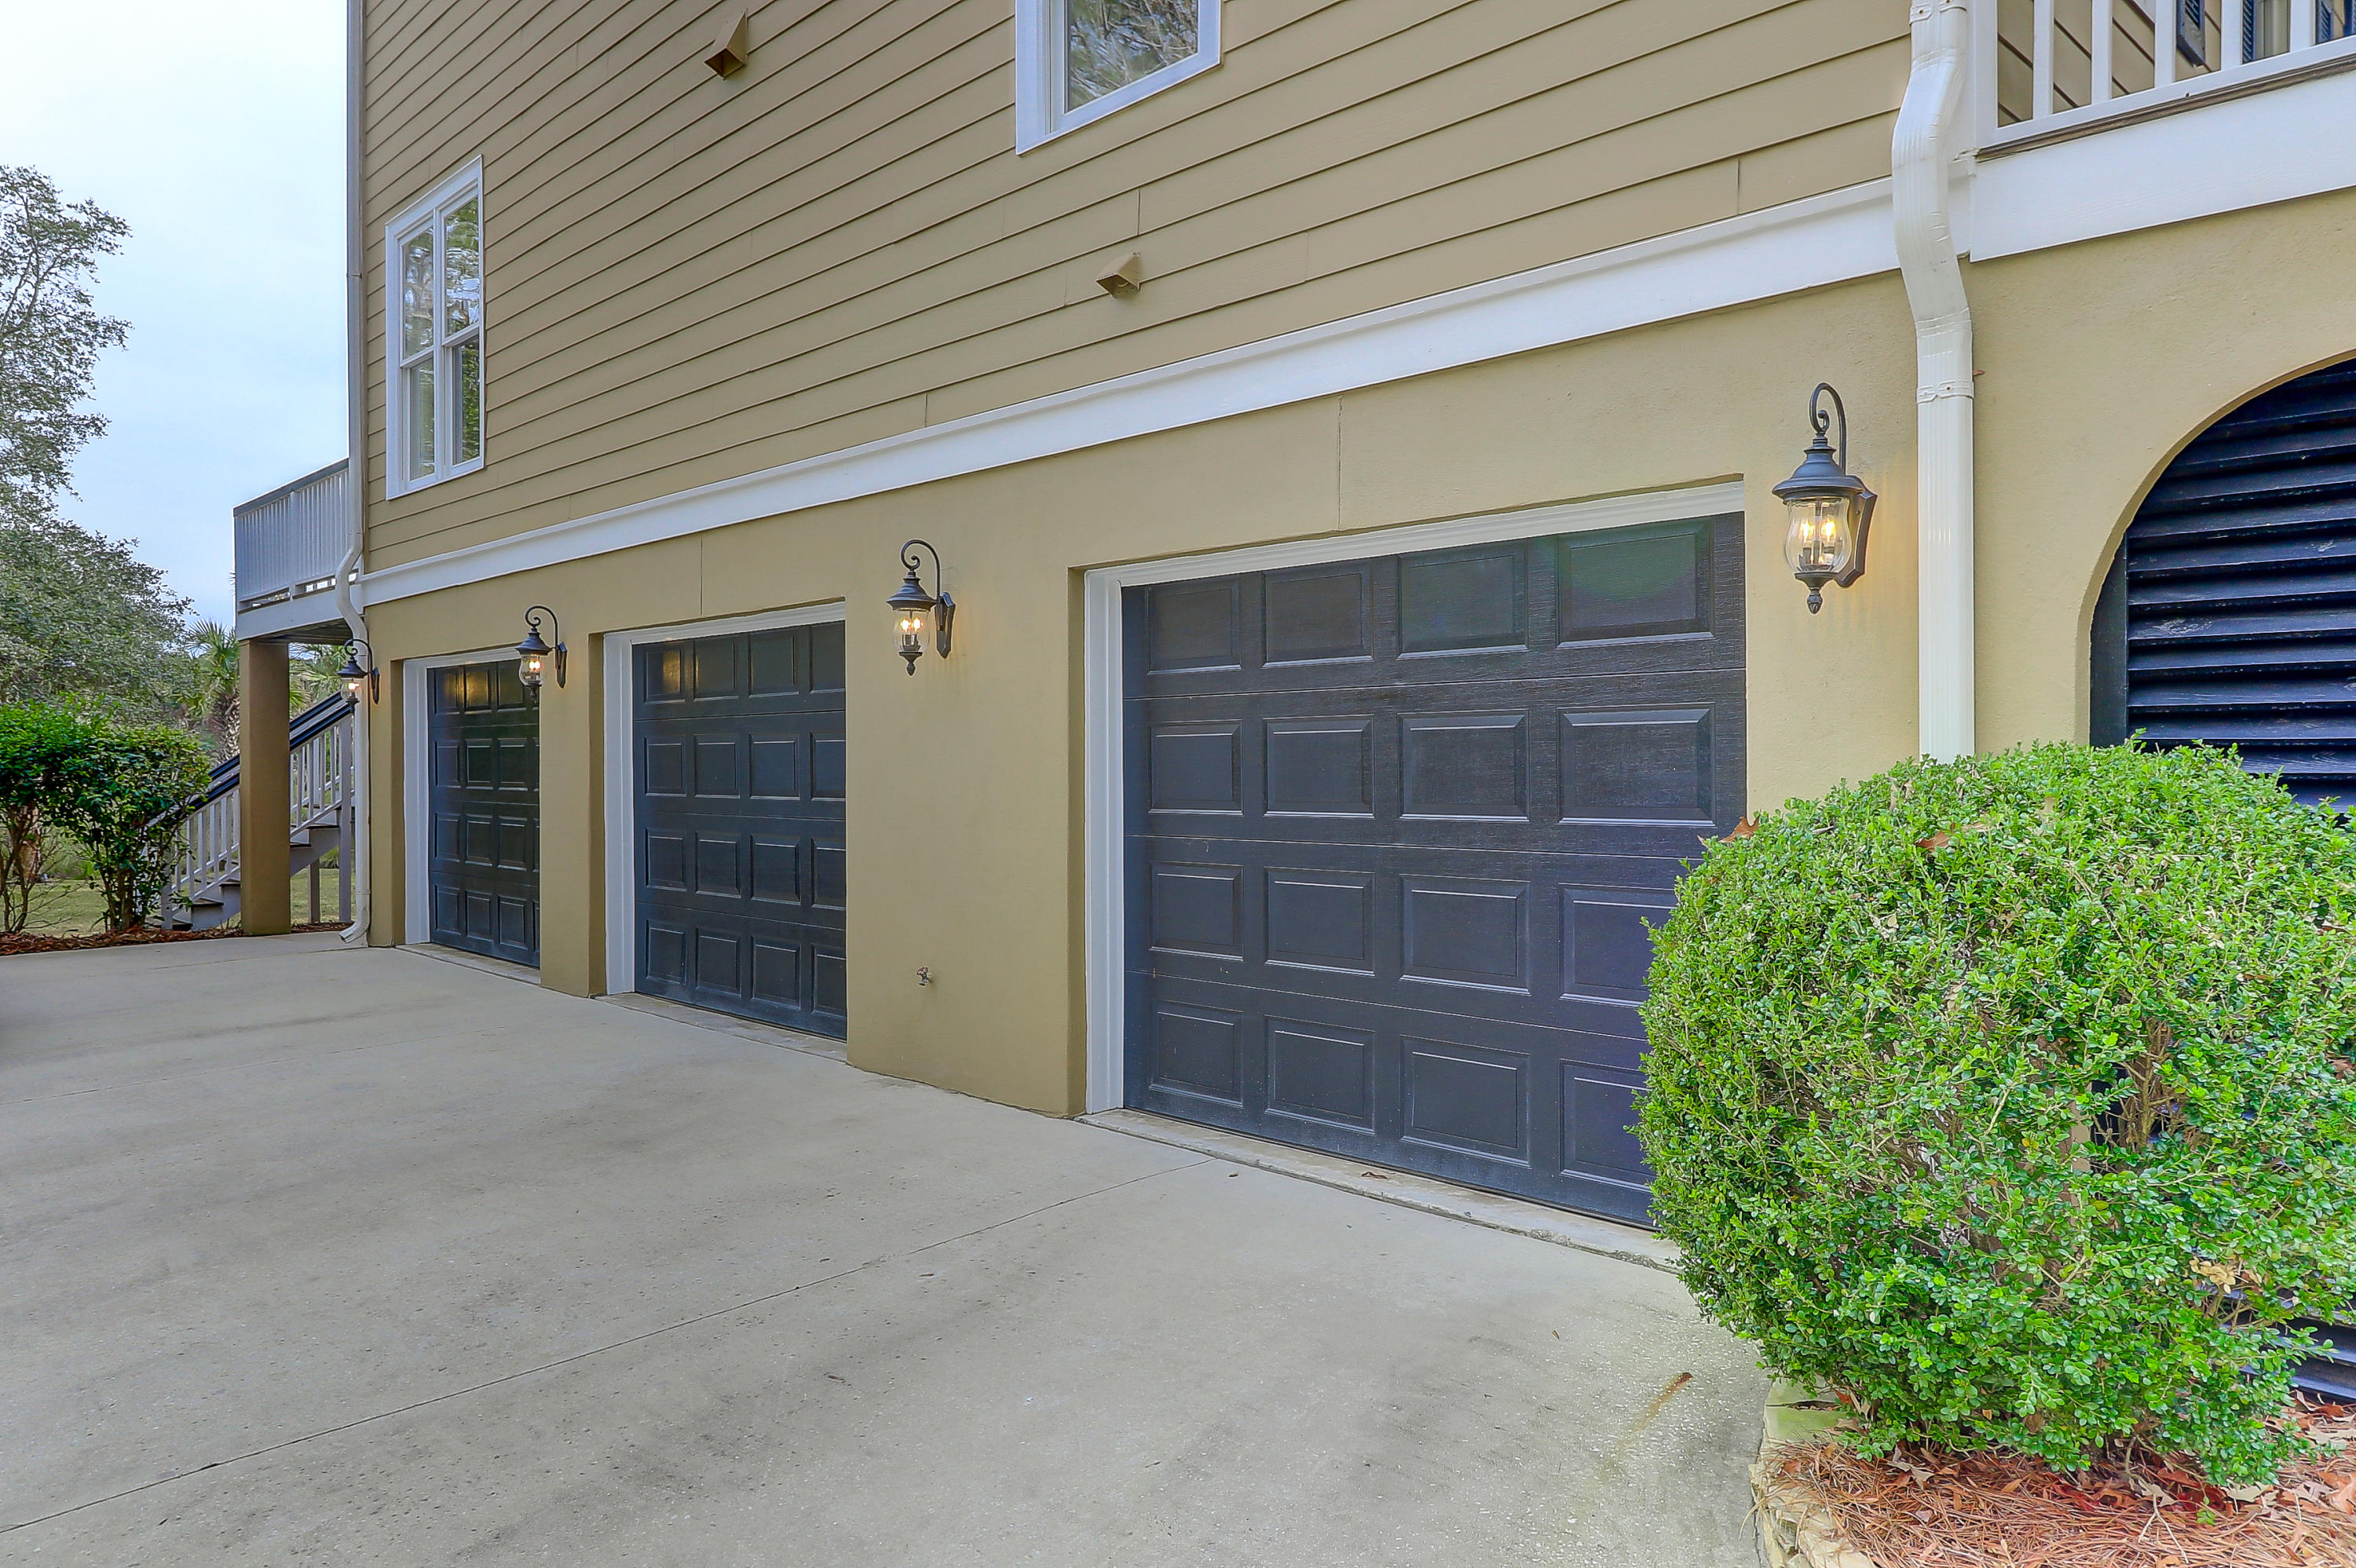 Dunes West Homes For Sale - 1764 Greenspoint, Mount Pleasant, SC - 65